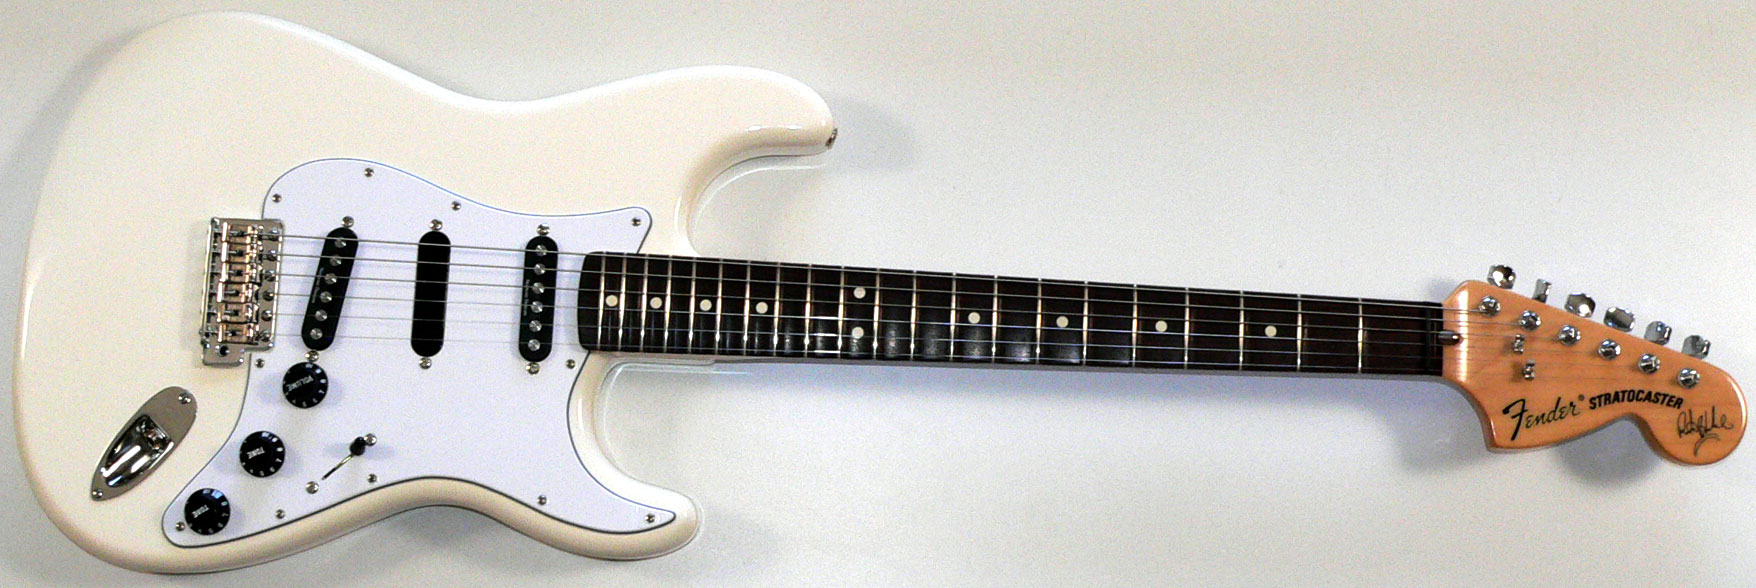 hight resolution of soldritchie blackmore stratocaster guitar